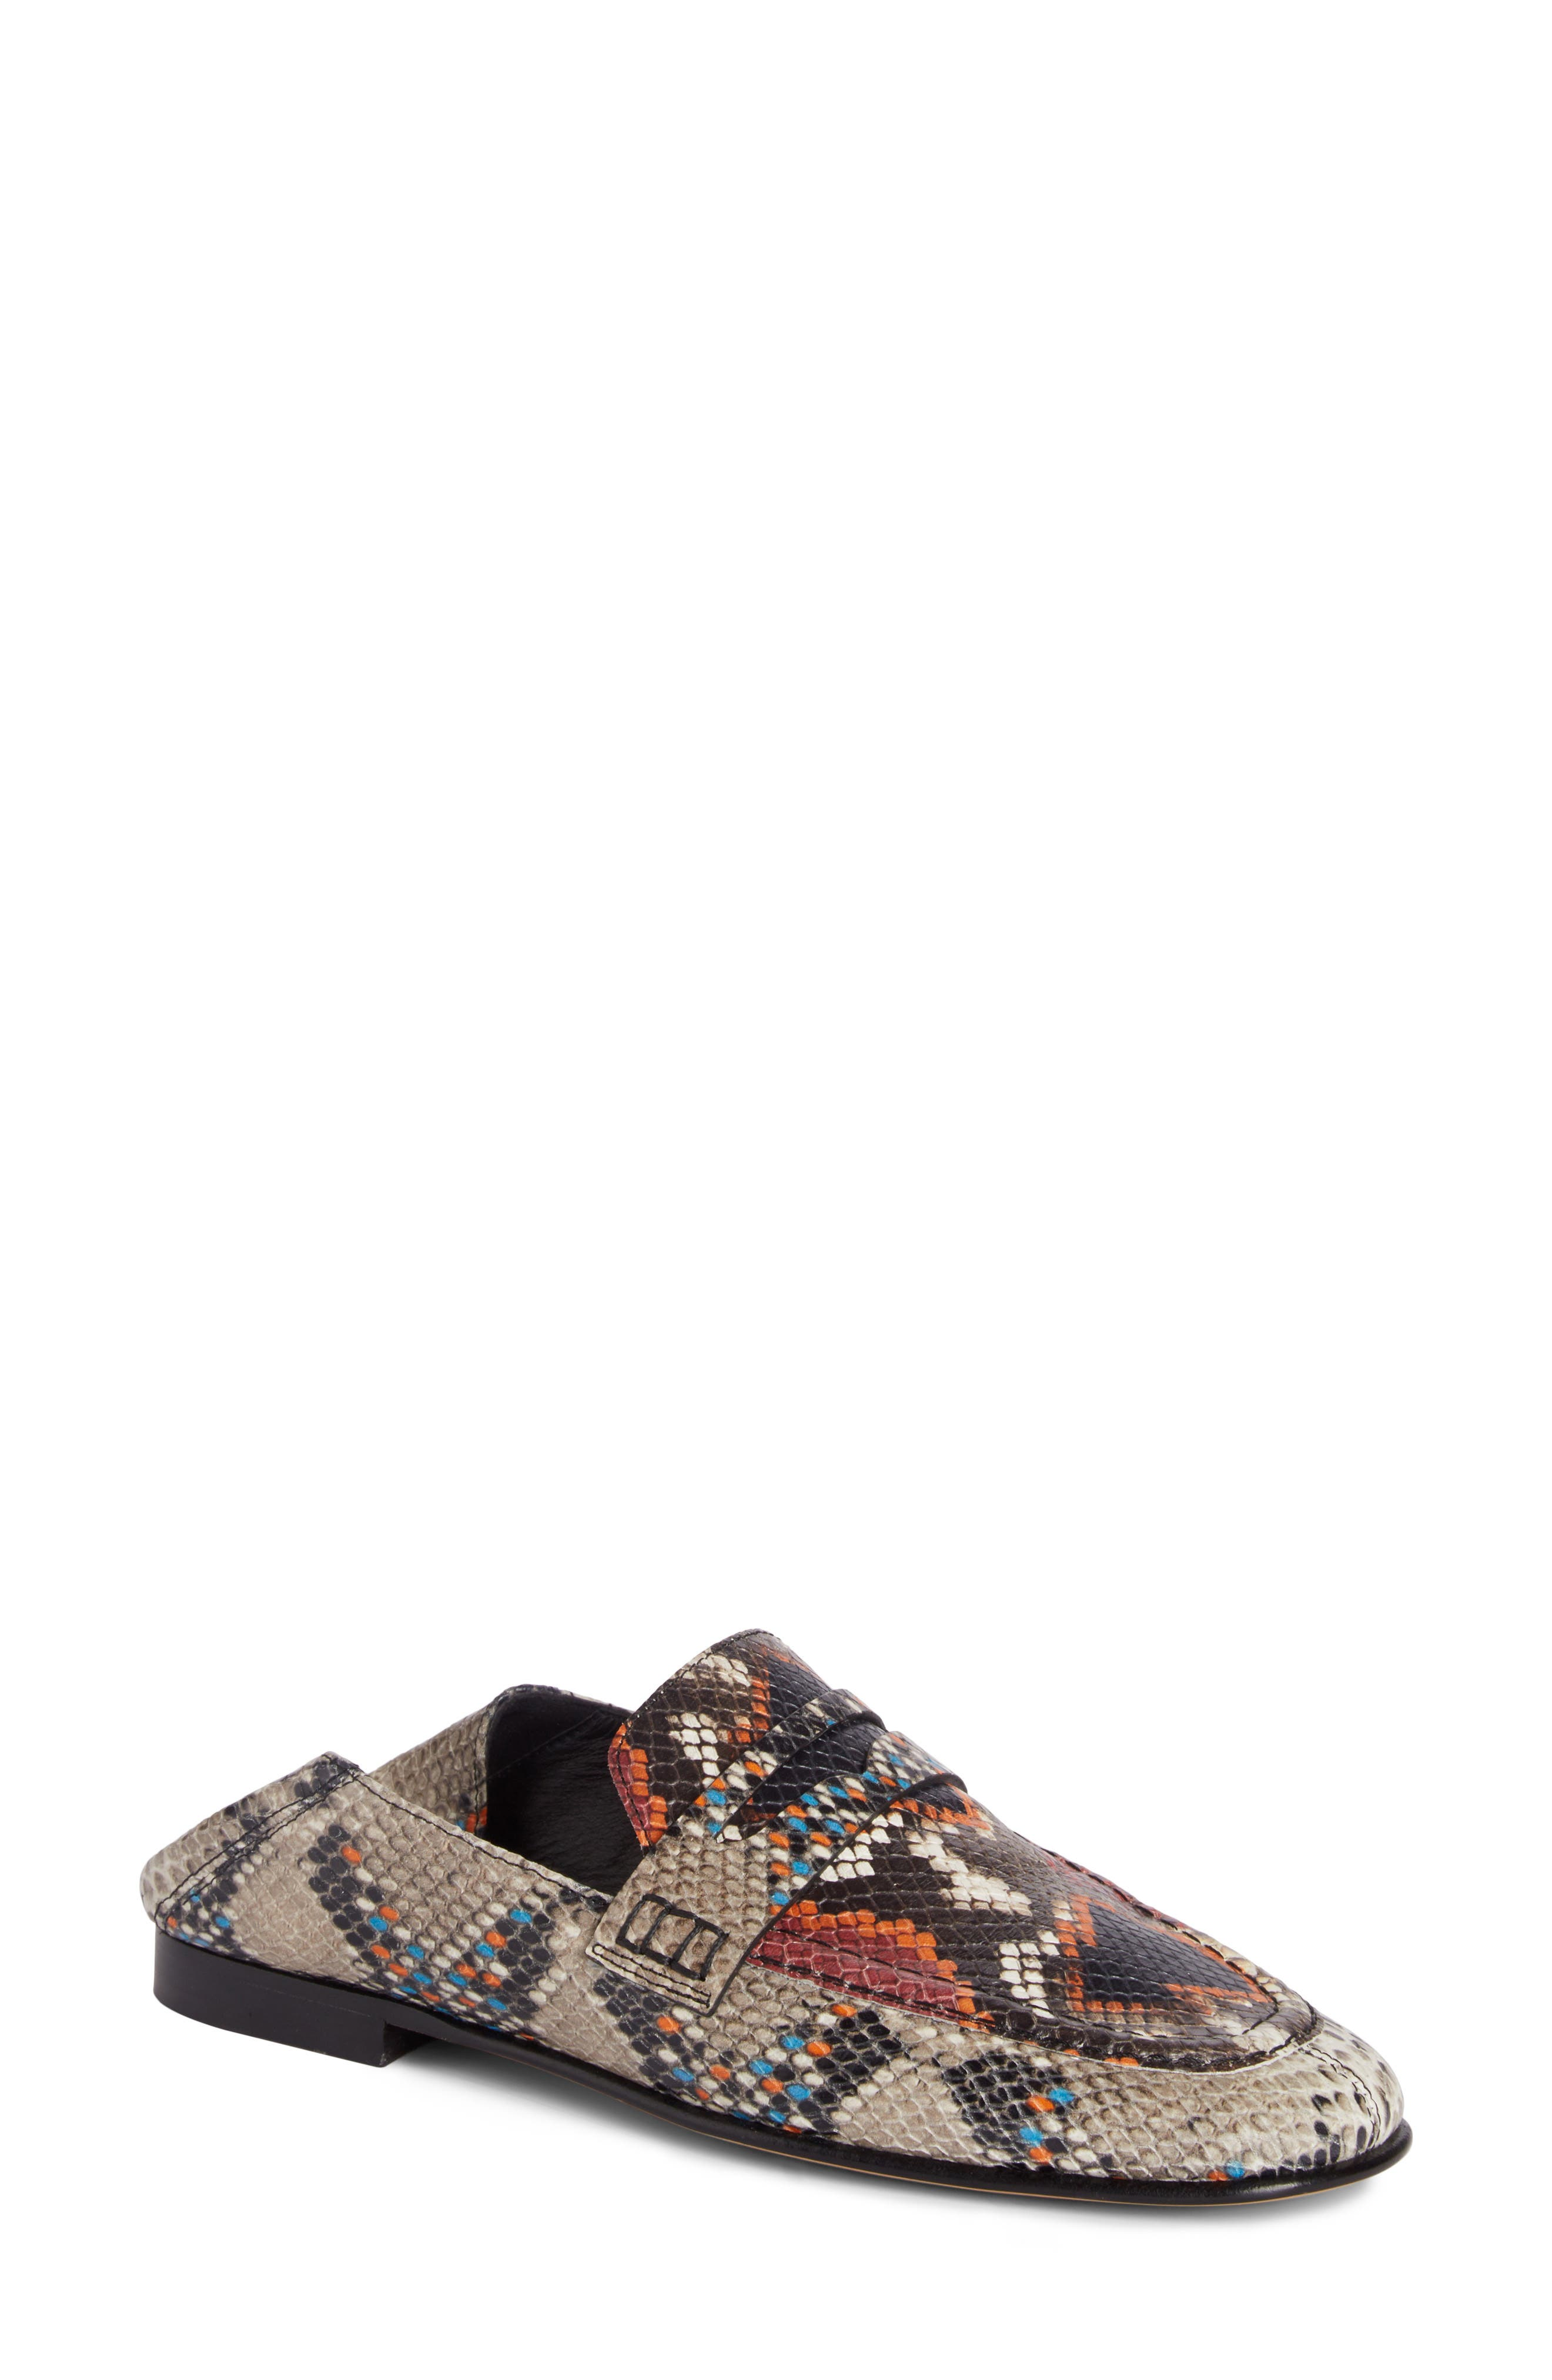 Fezzy Snakeskin Embossed Convertible Loafer,                         Main,                         color,